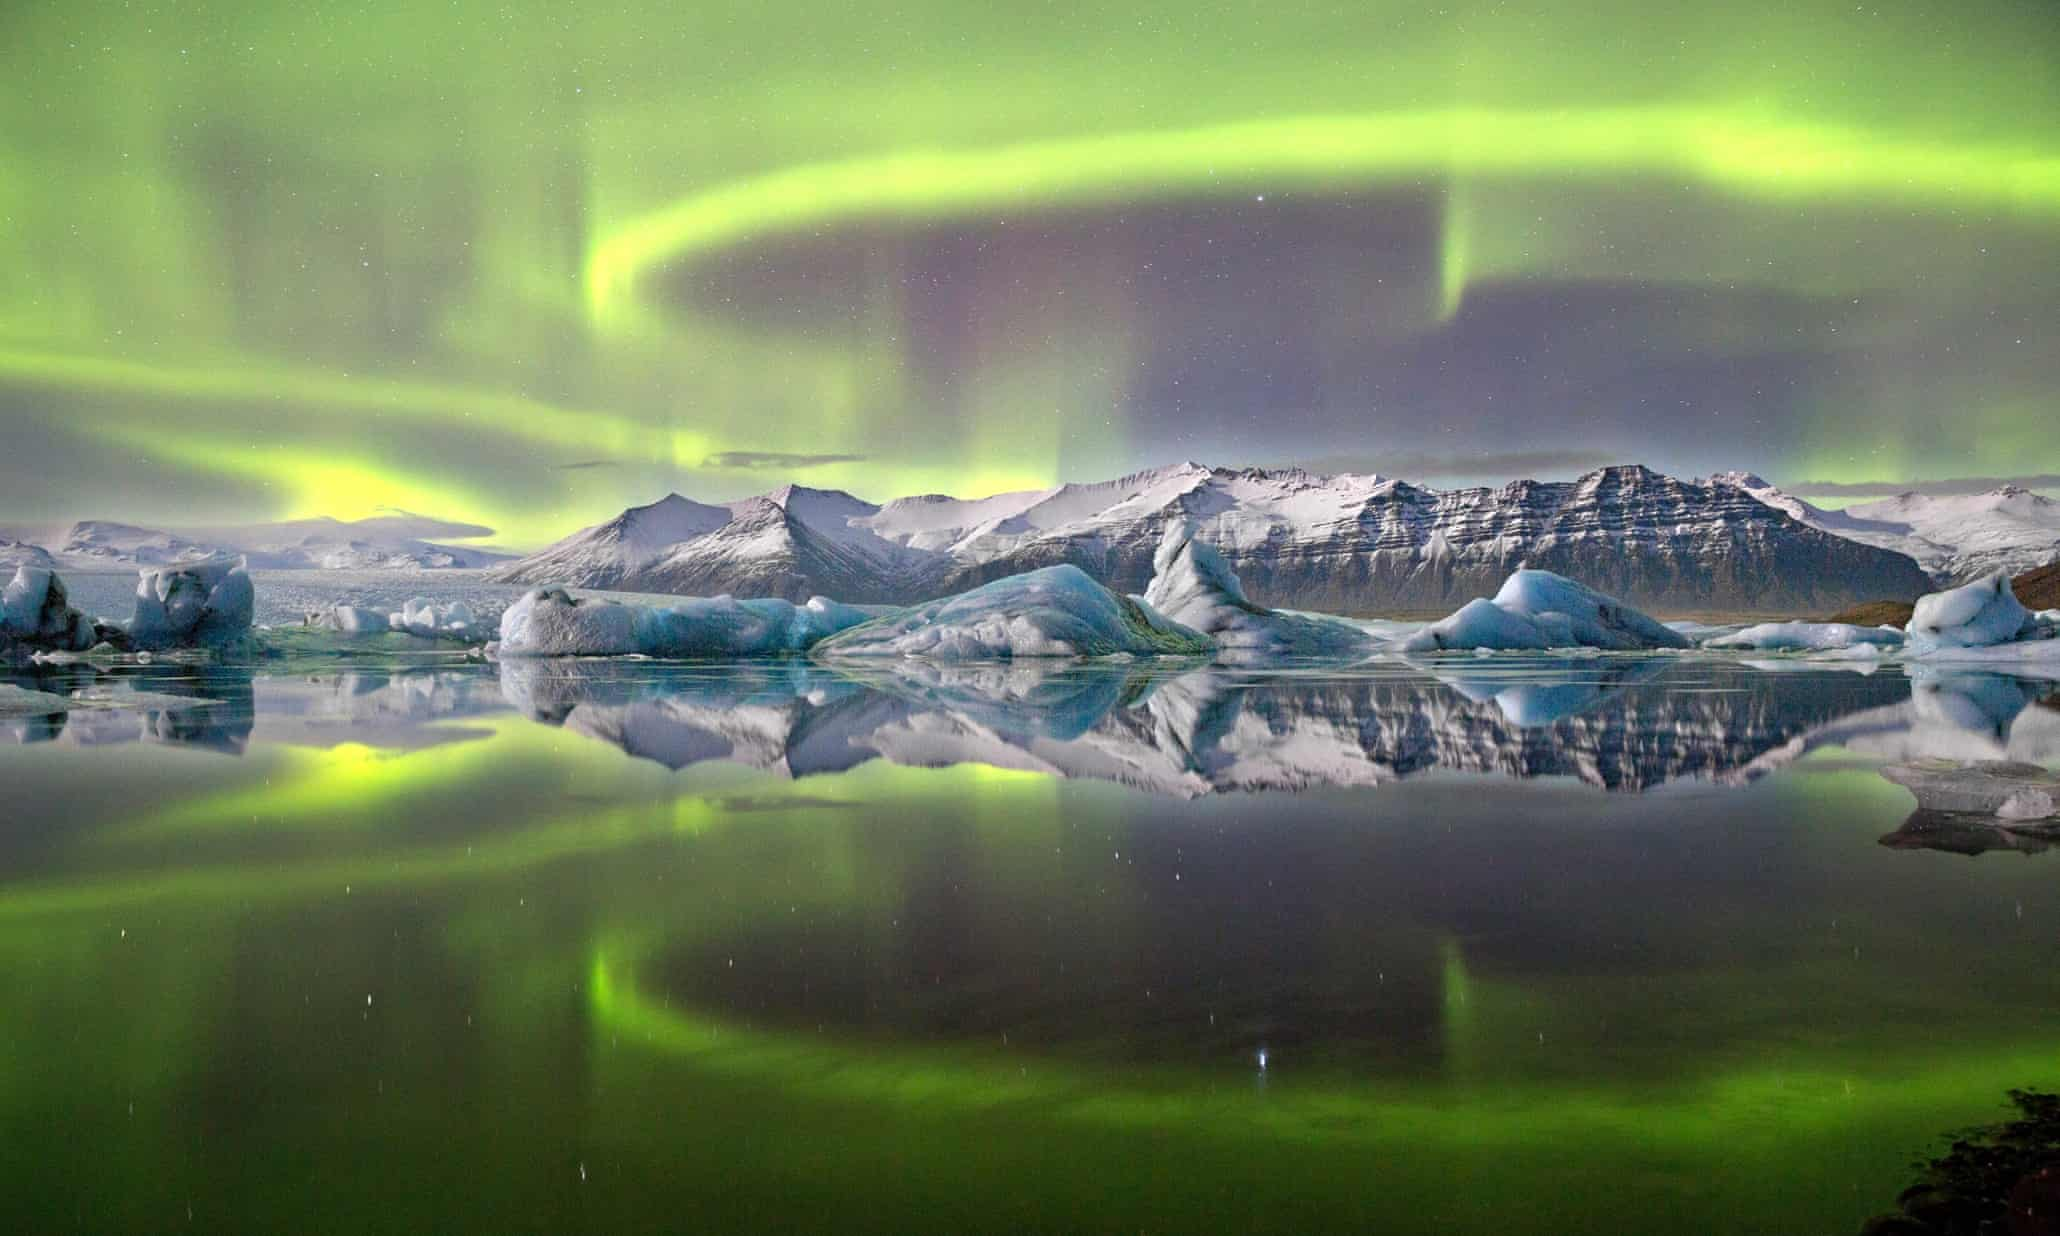 Astronomy Photographer of the Year 2014 - in pictures